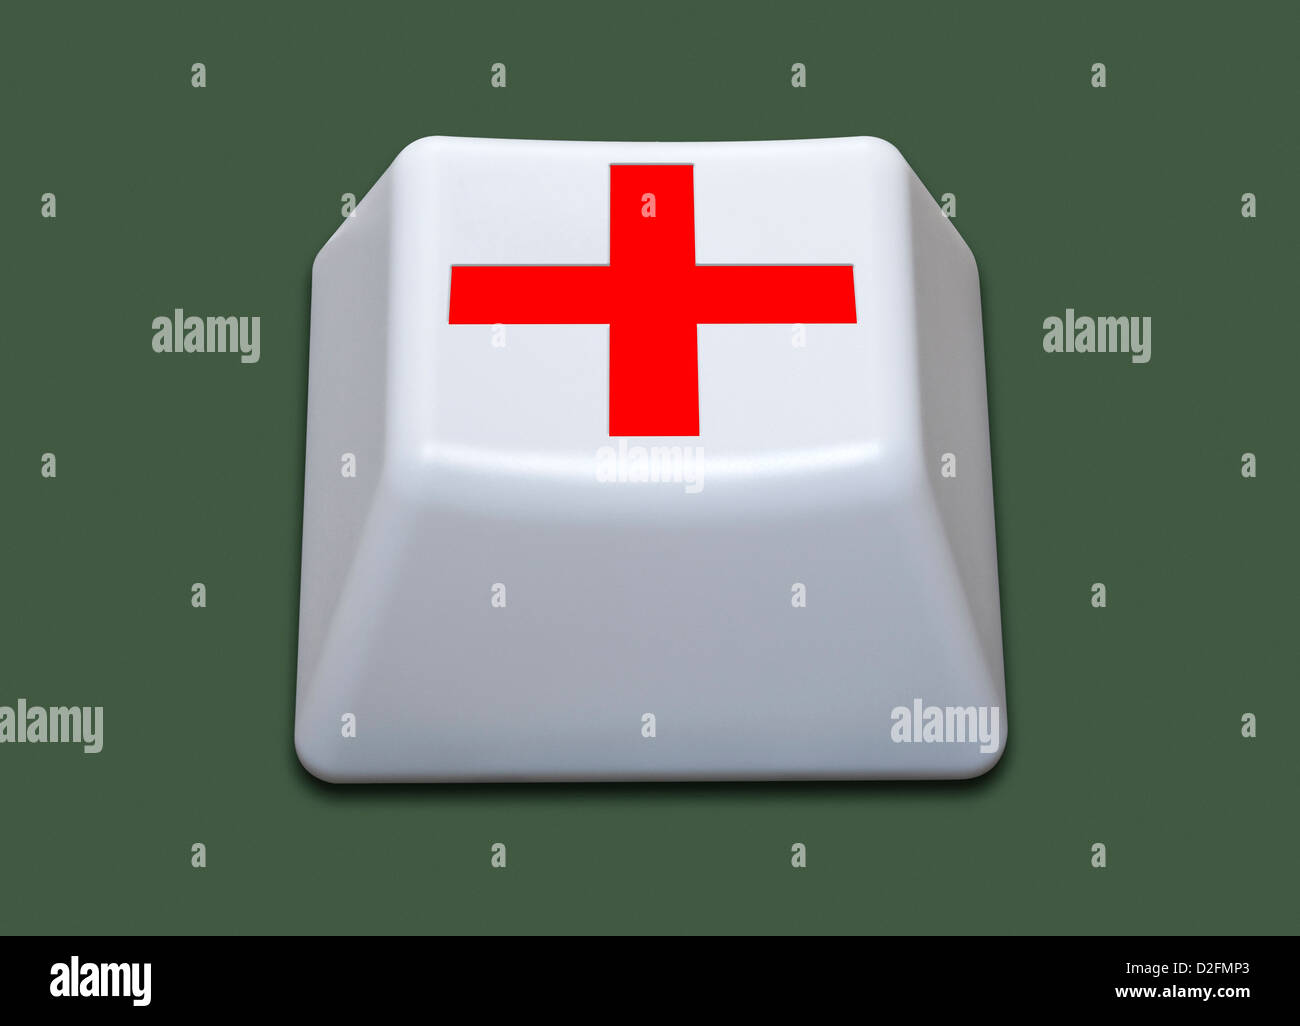 Isolated white computer key with a red cross symbol on it. Healthcare / online / digital / future technology concept - Stock Image